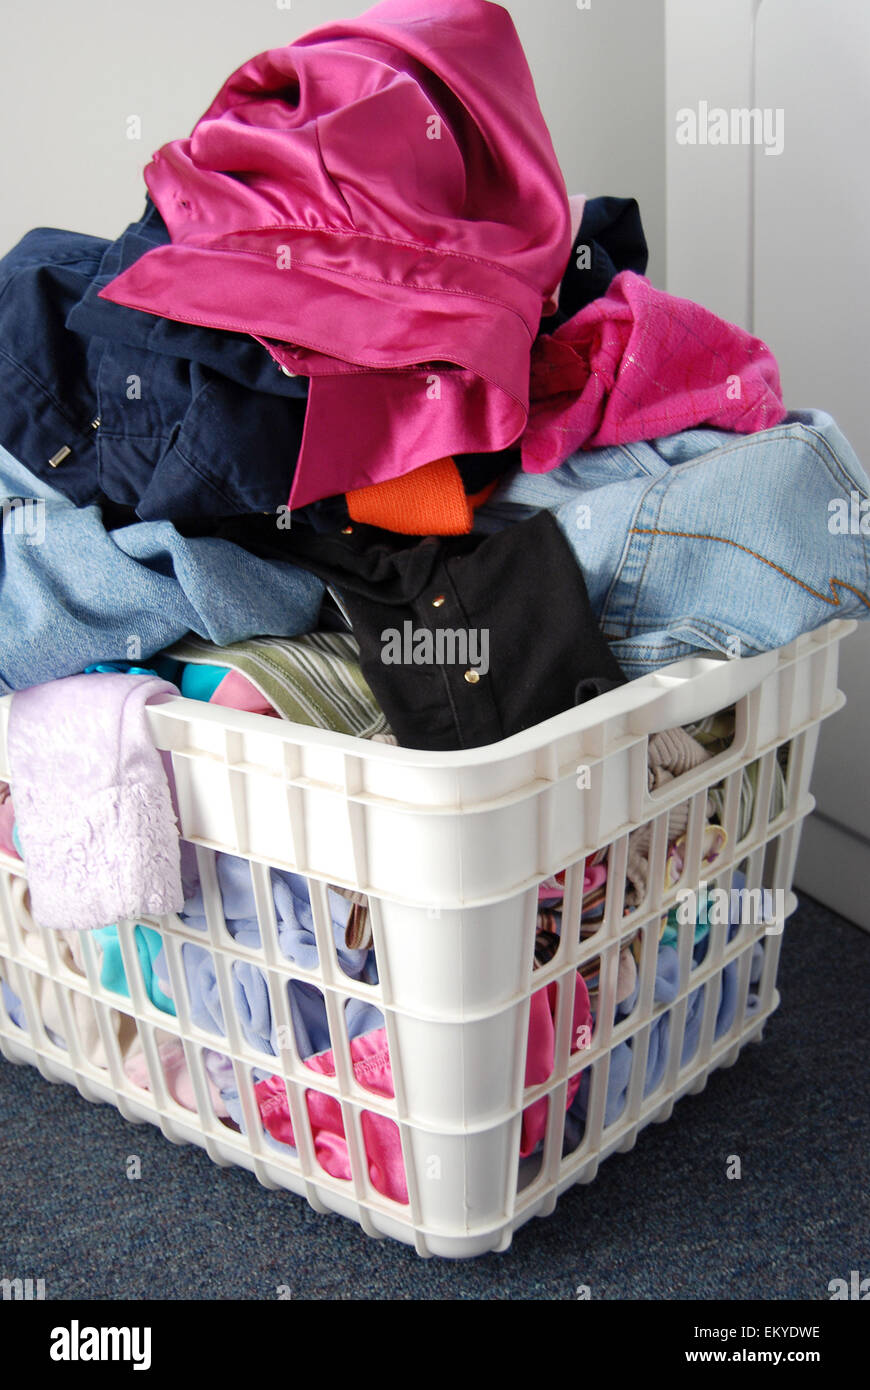 Pile of clean clothes in white laundry basket. - Stock Image